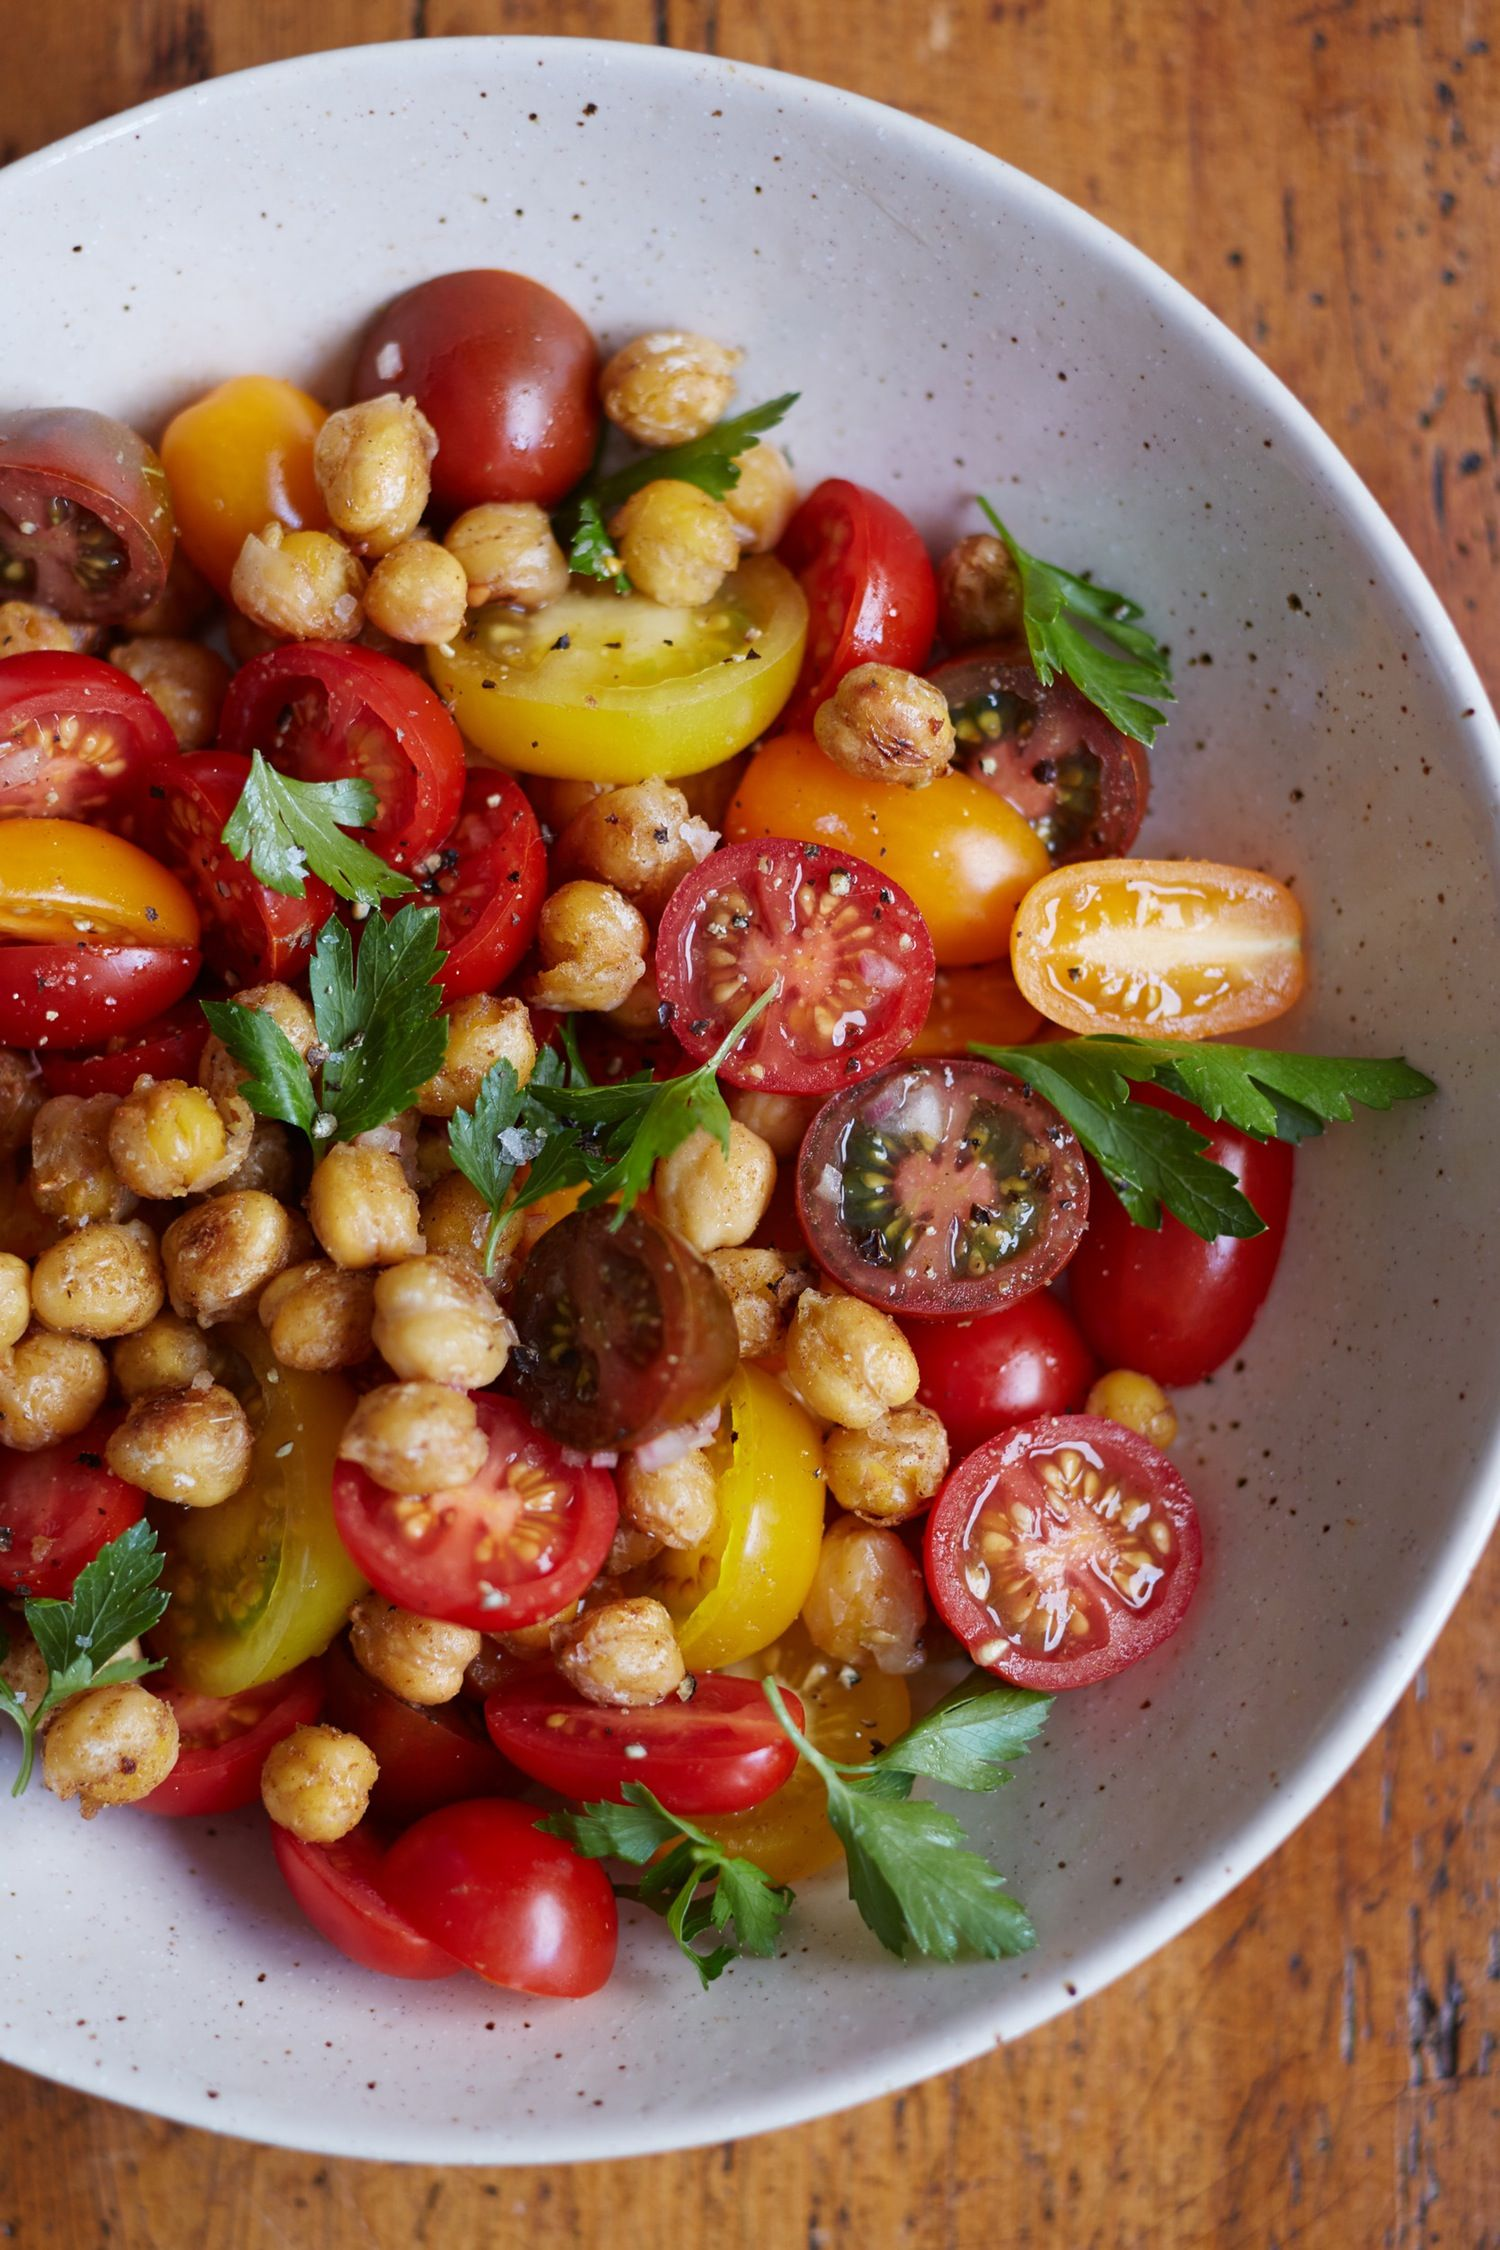 Recipe: Tomato Chickpea Salad